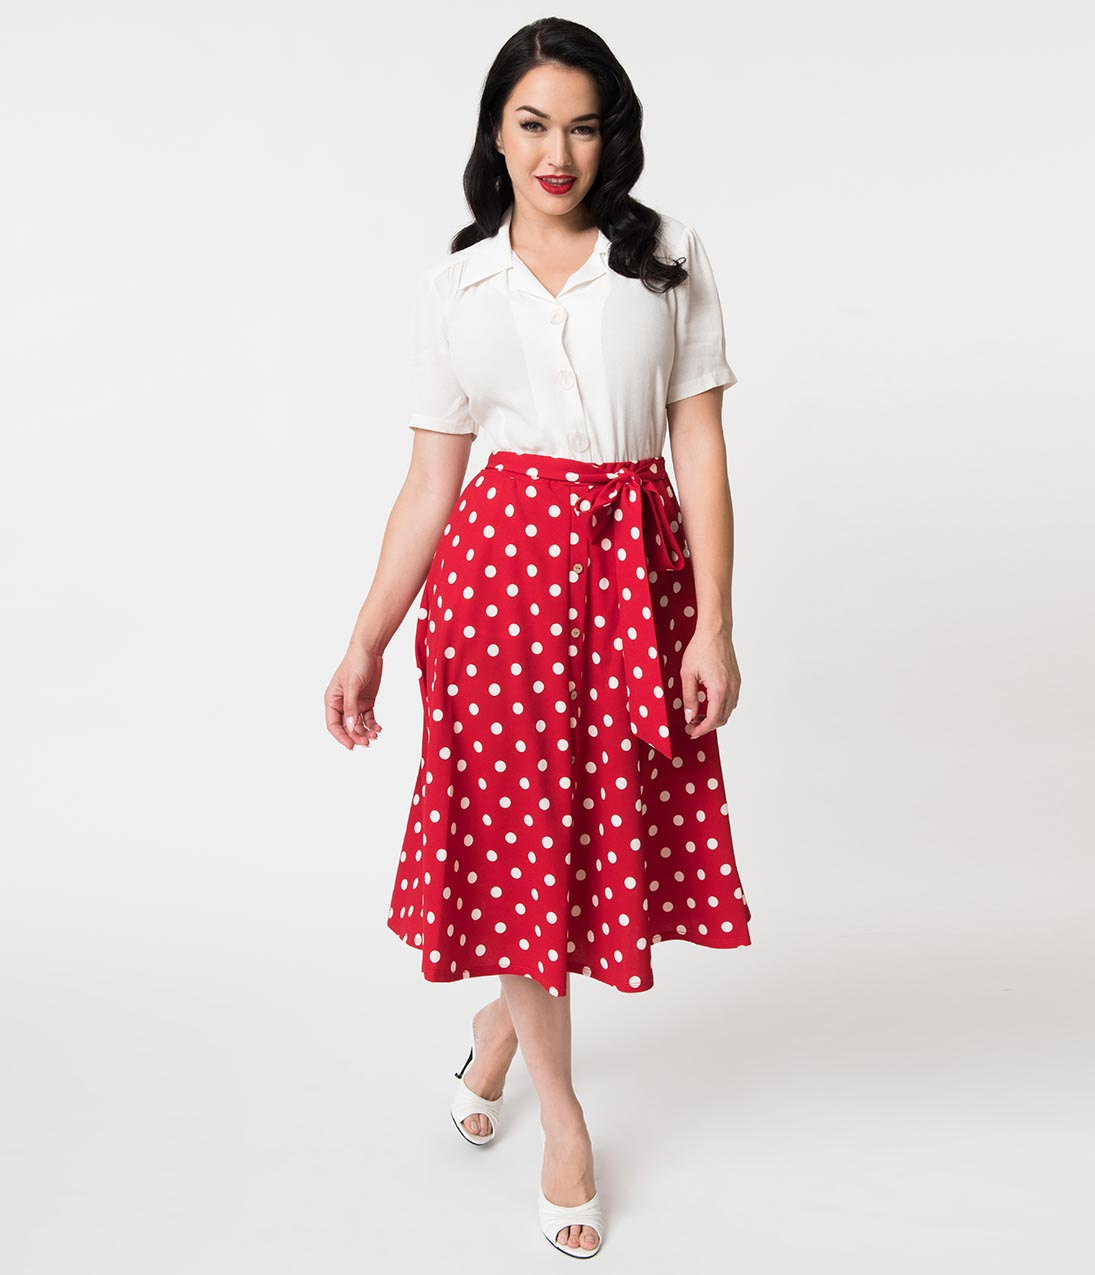 50s Skirt Styles | Poodle Skirts, Circle Skirts, Pencil Skirts Vintage Style Red  White Polka Dot Tie Midi Skirt $48.00 AT vintagedancer.com